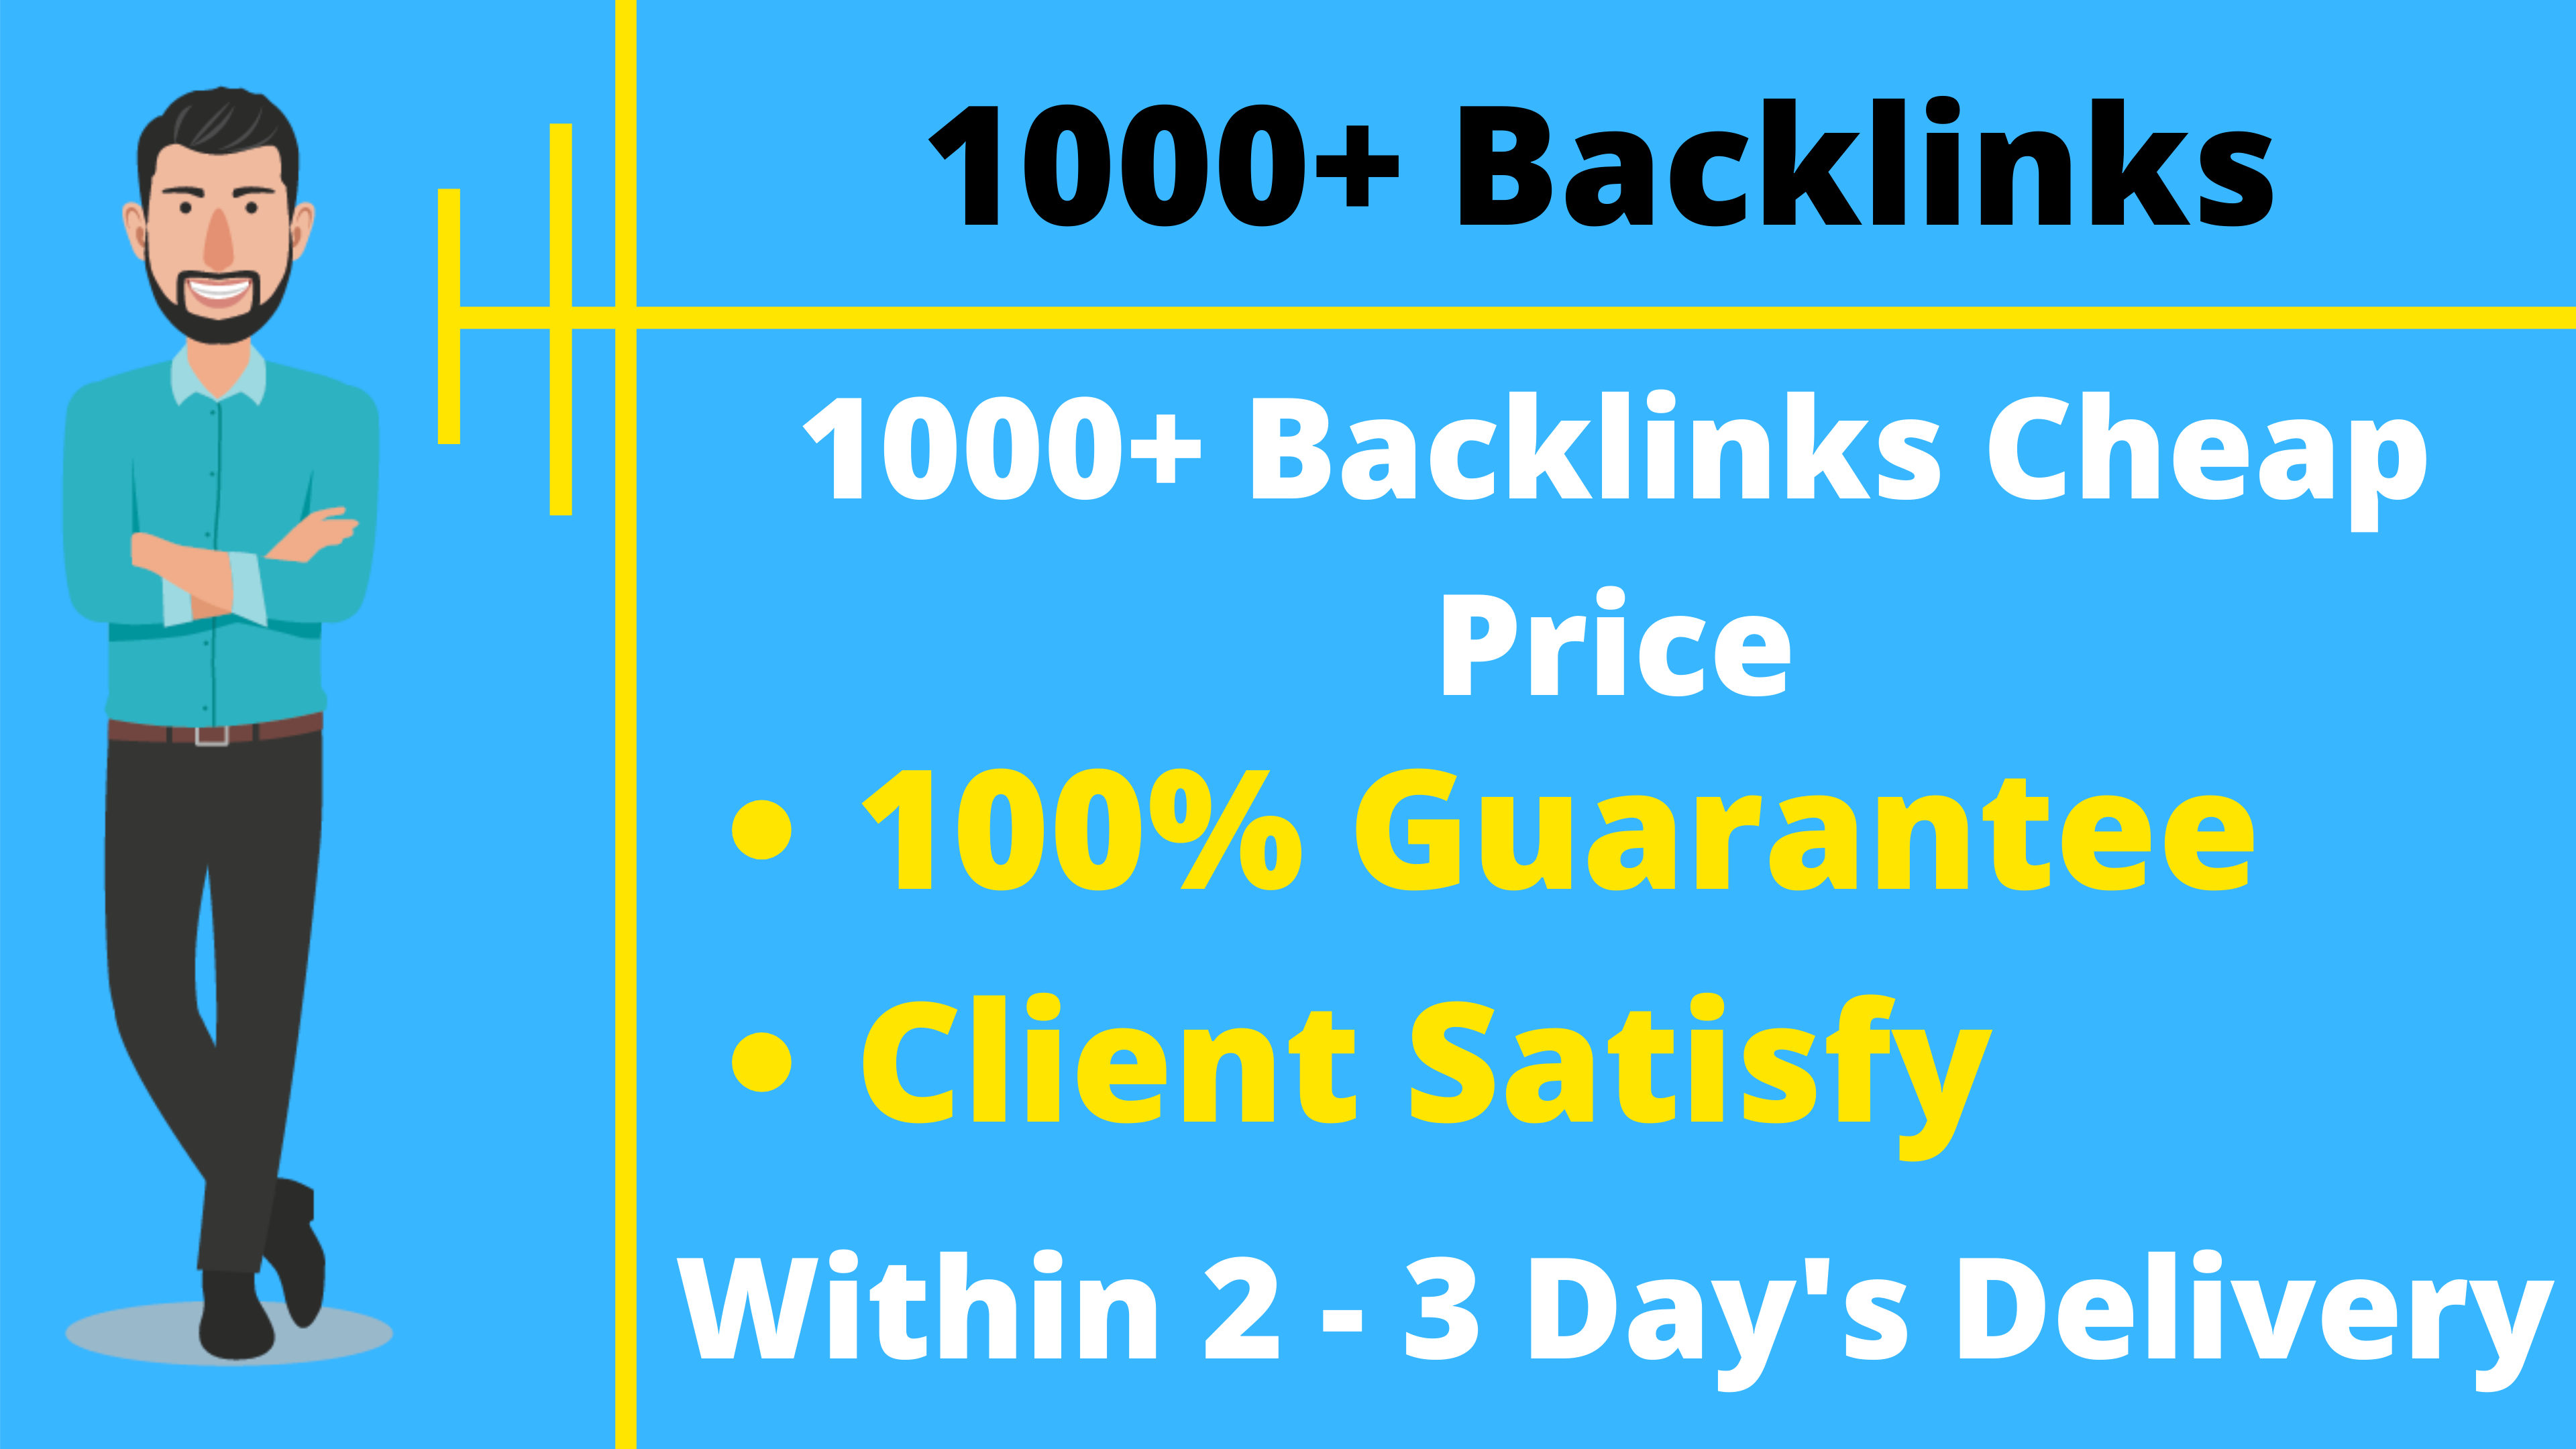 1000+ Quality Backlinks Cheap Price Offer Limited Time